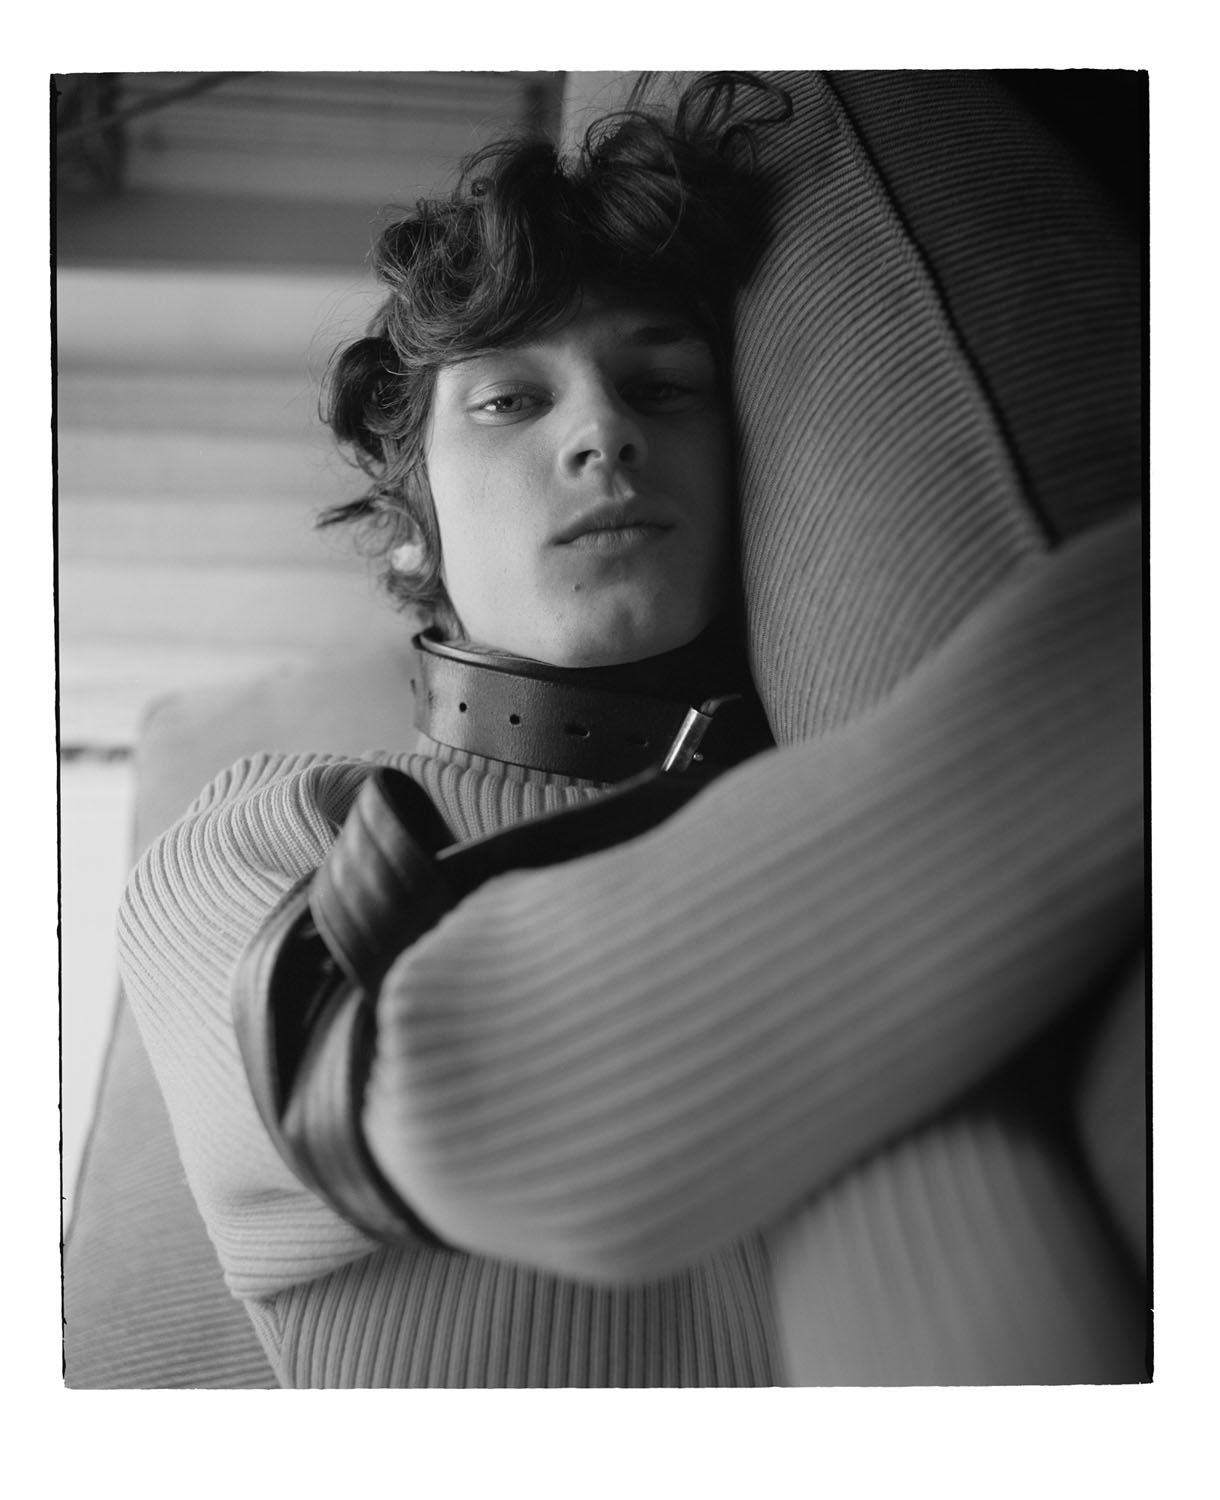 """Matthieu Villot photographed by Benjamin Vnuk and styled by Erik Raynal for """" NeuroMANCER """" sotry featured in Off Black Magazine - """" The Future is : Theirs """" issue. Grooming by Terry Saxon at Jedroot ."""